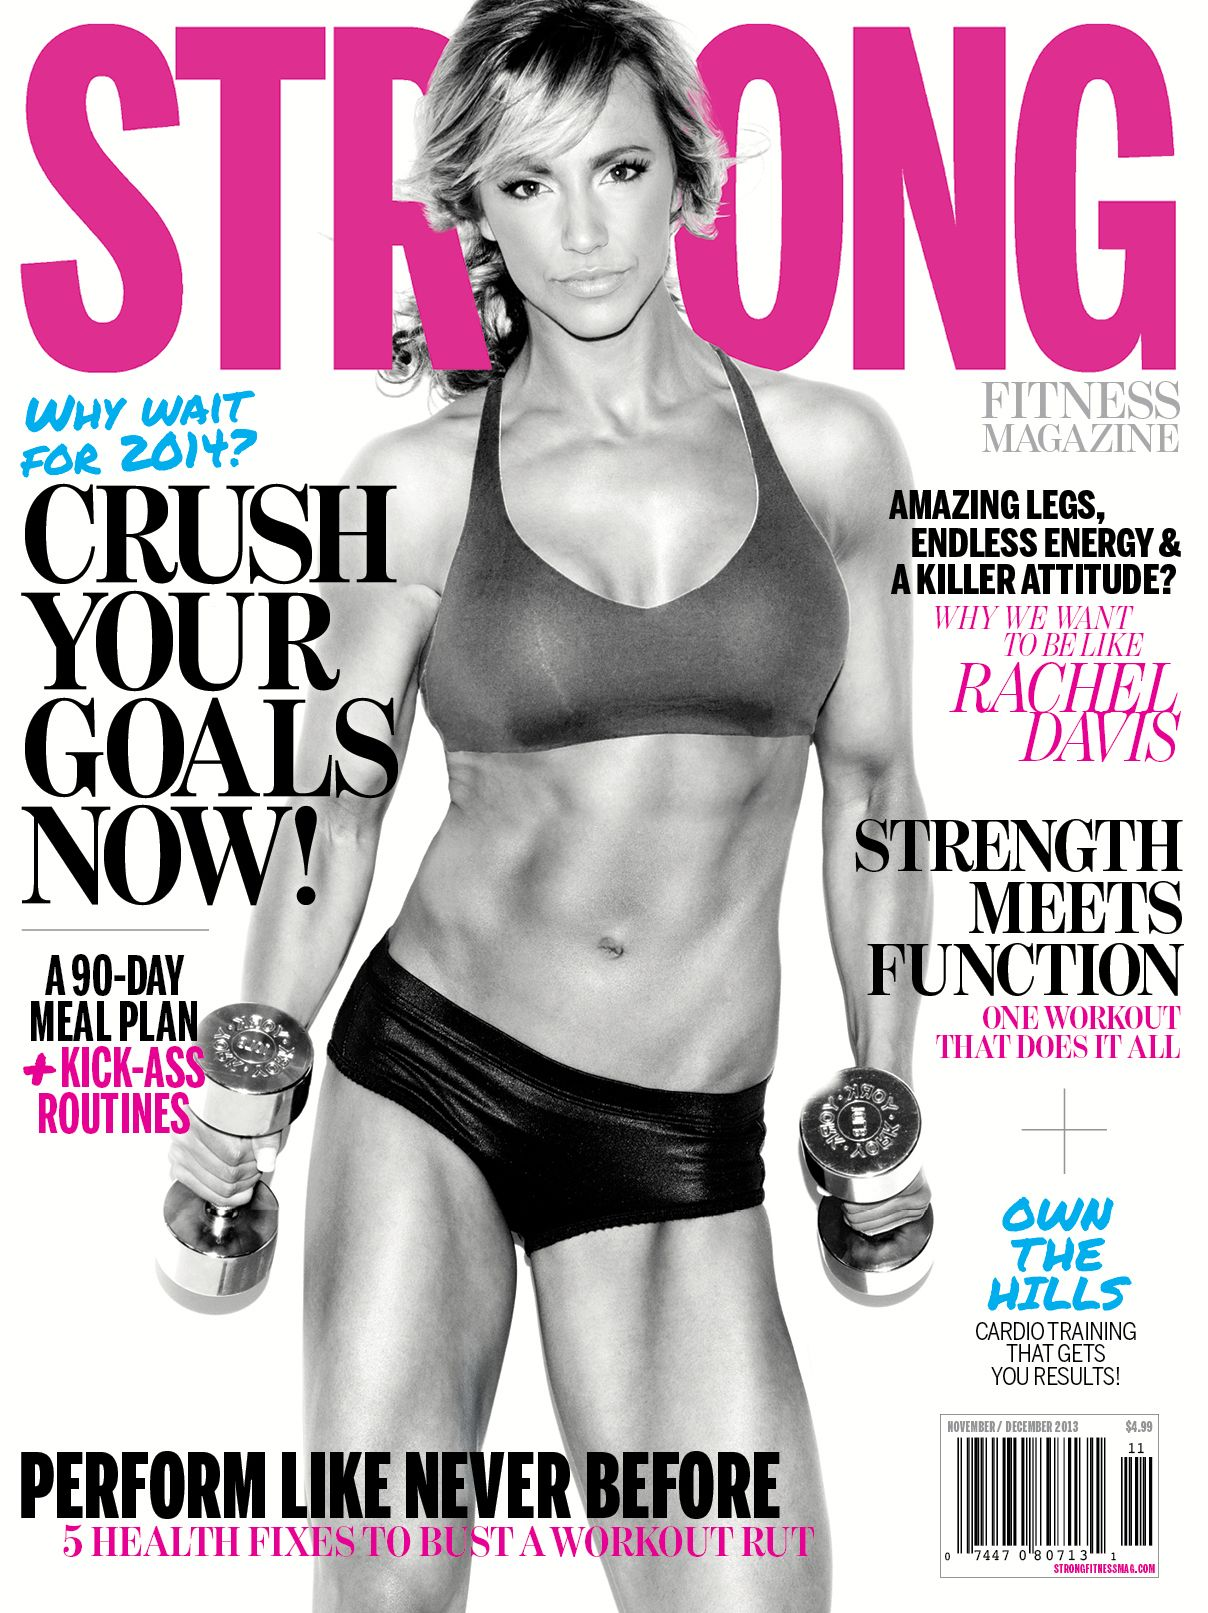 strong fitness magazine issue model rachel davis strong strong fitness magazine issue 1 model rachel davis